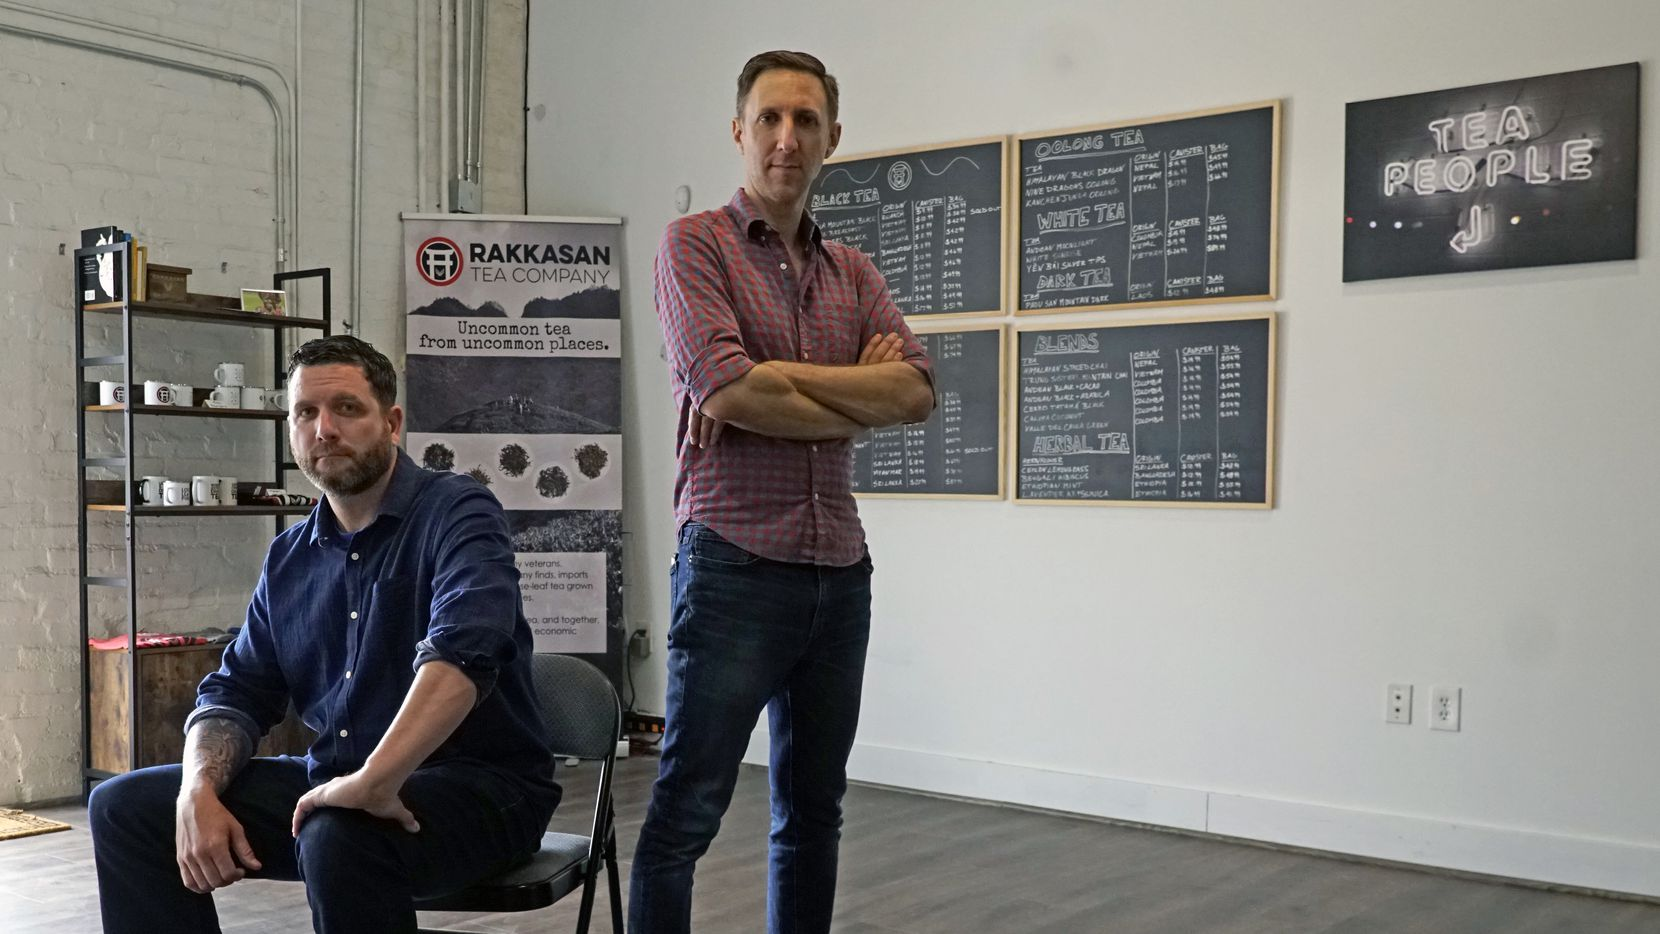 Rakkasan Tea Company co-founders and veterans Terrence Kamauf (left) and Brandon Friedman should know how to get approved for an SBA loan thanks to Friedman's experience in the federal bureaucracy. But like many businesses, they've waited three months for a life-changing loan, only to be denied.